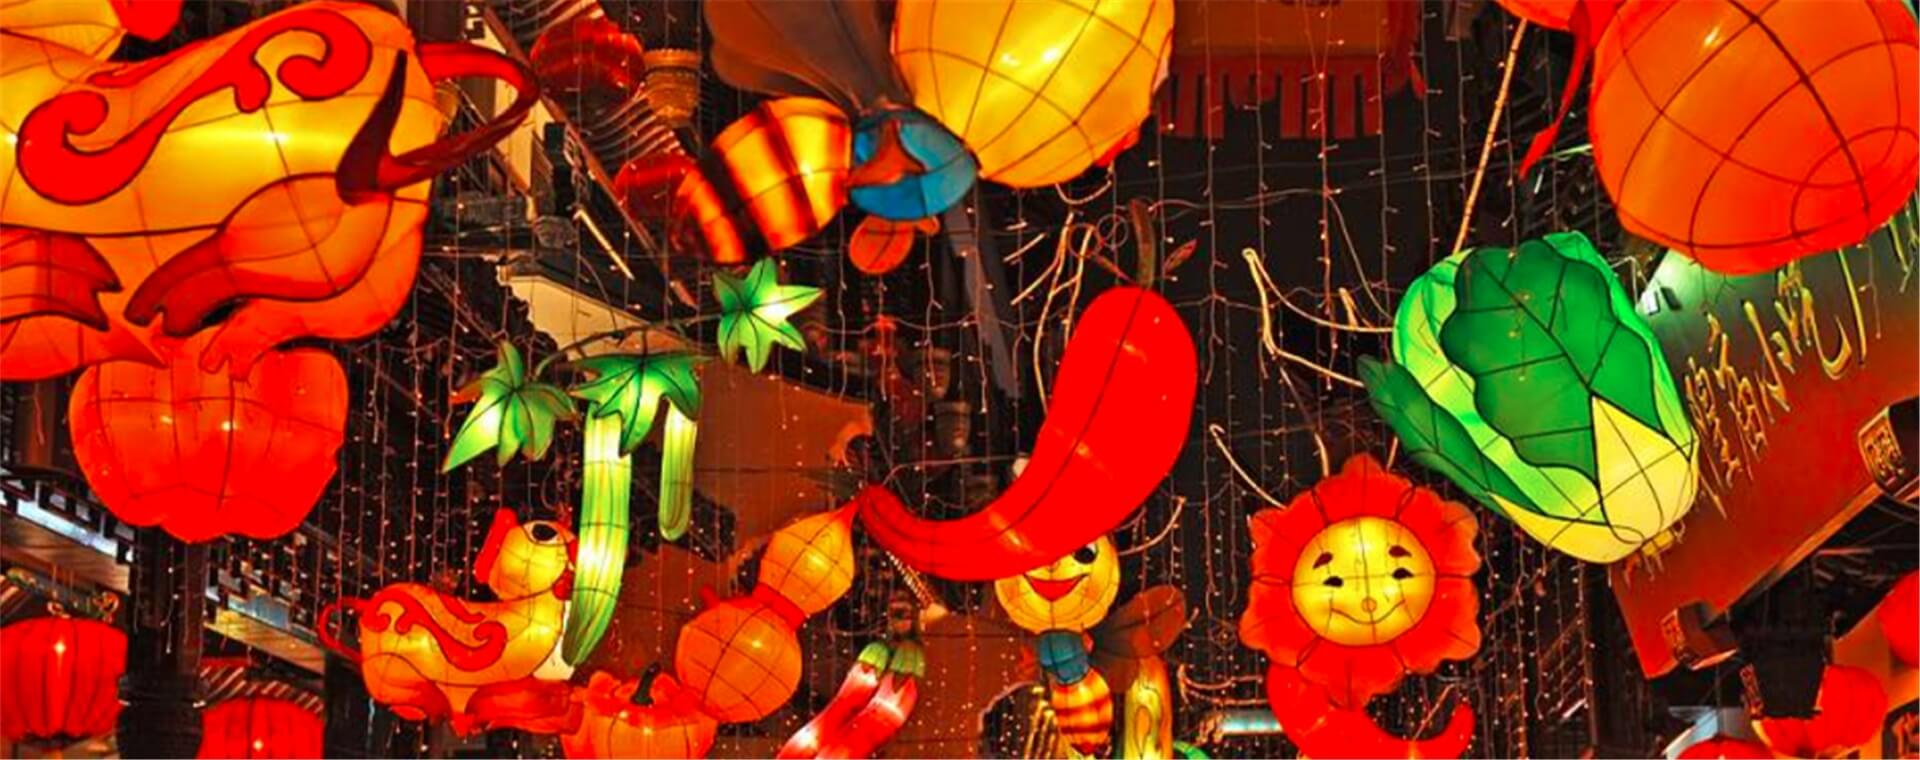 The Holidays in Suzhou banner